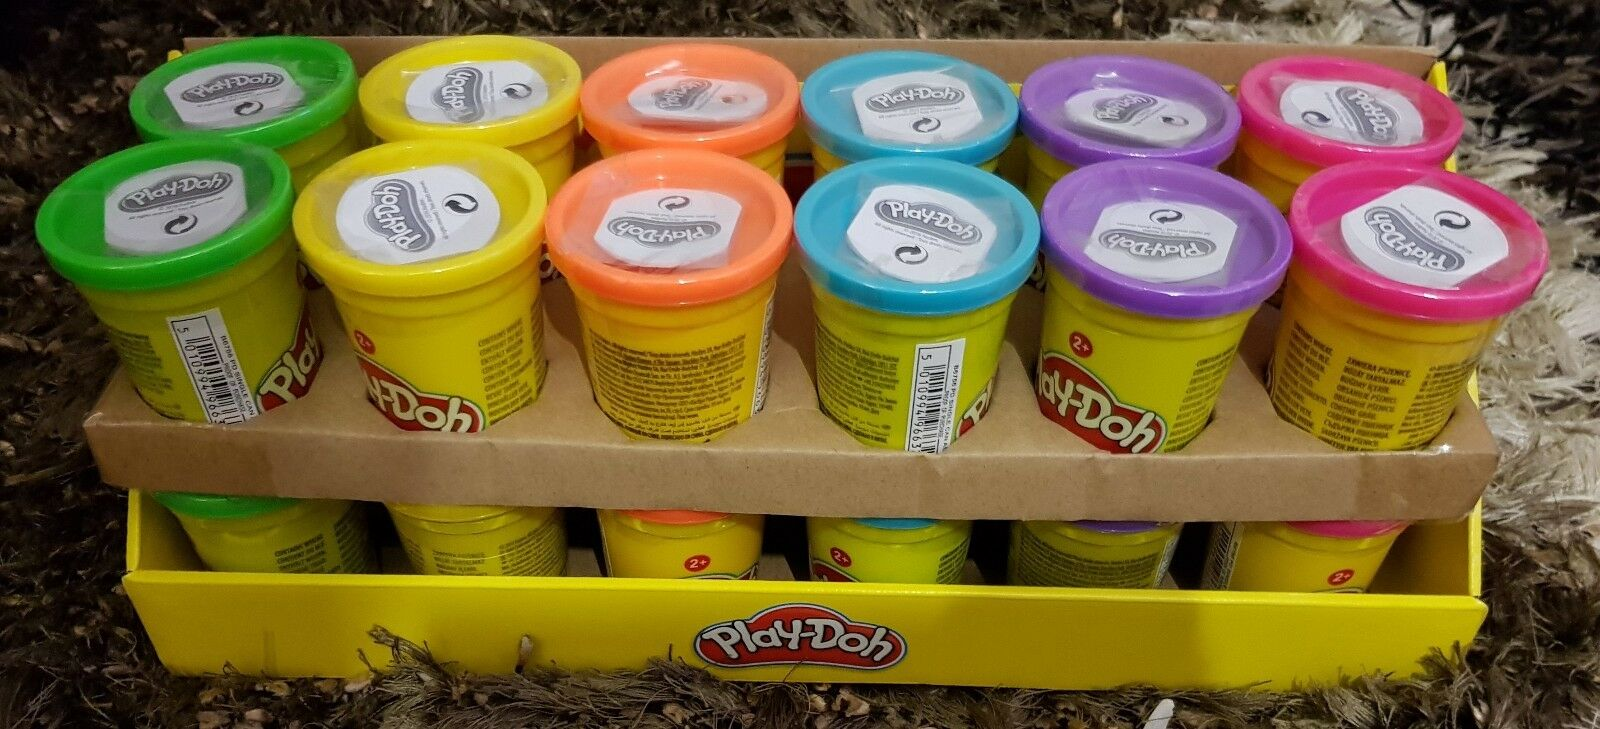 Case of 24 Play Doh 112g Single Can Modelling Compound Ages 2+